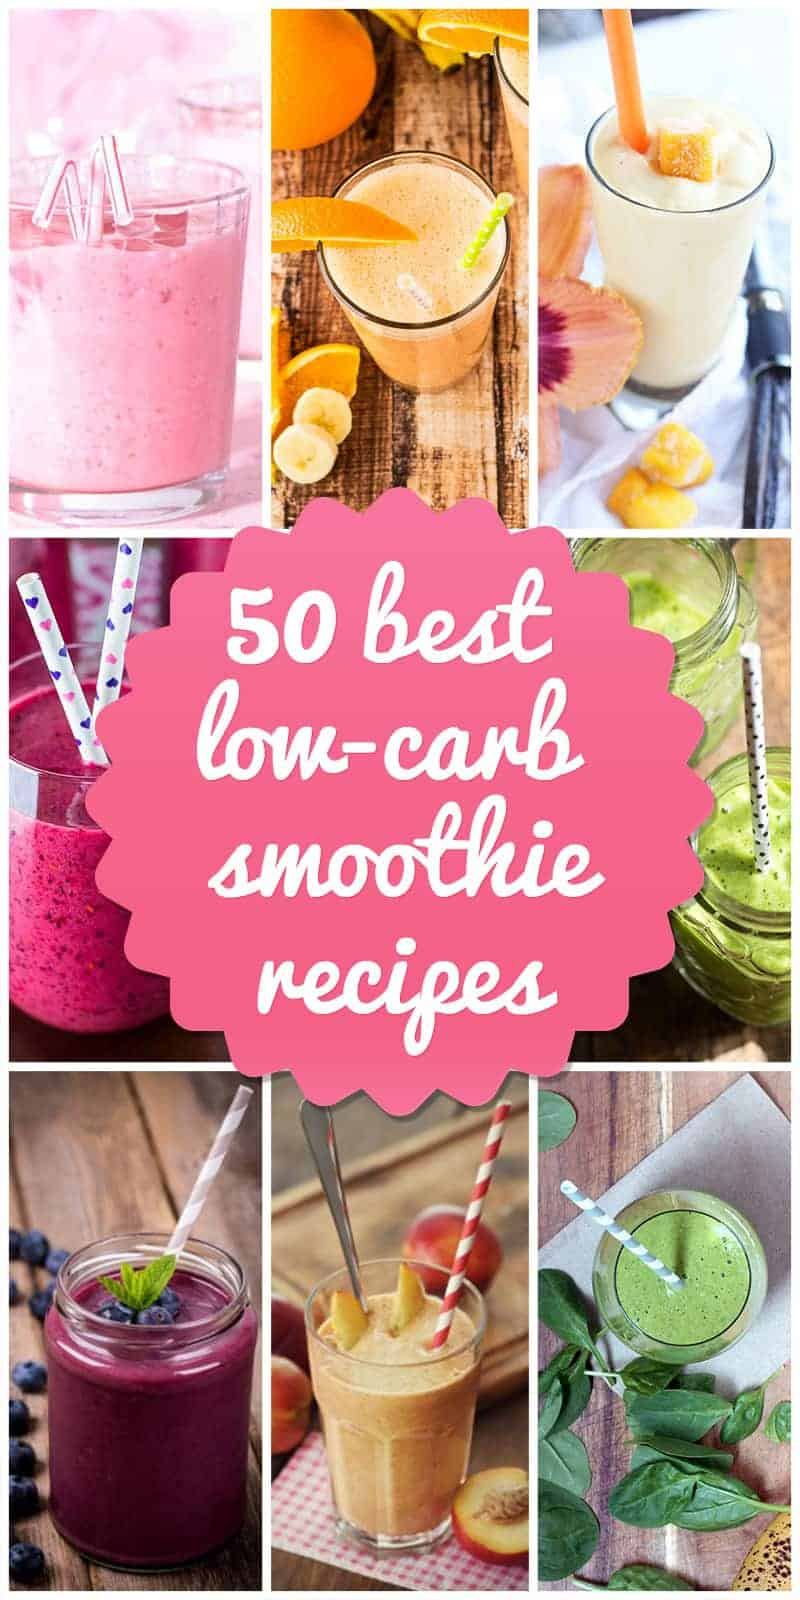 Add Flavor To Your Low Carb T With 50 Unique Smoothie Recipes